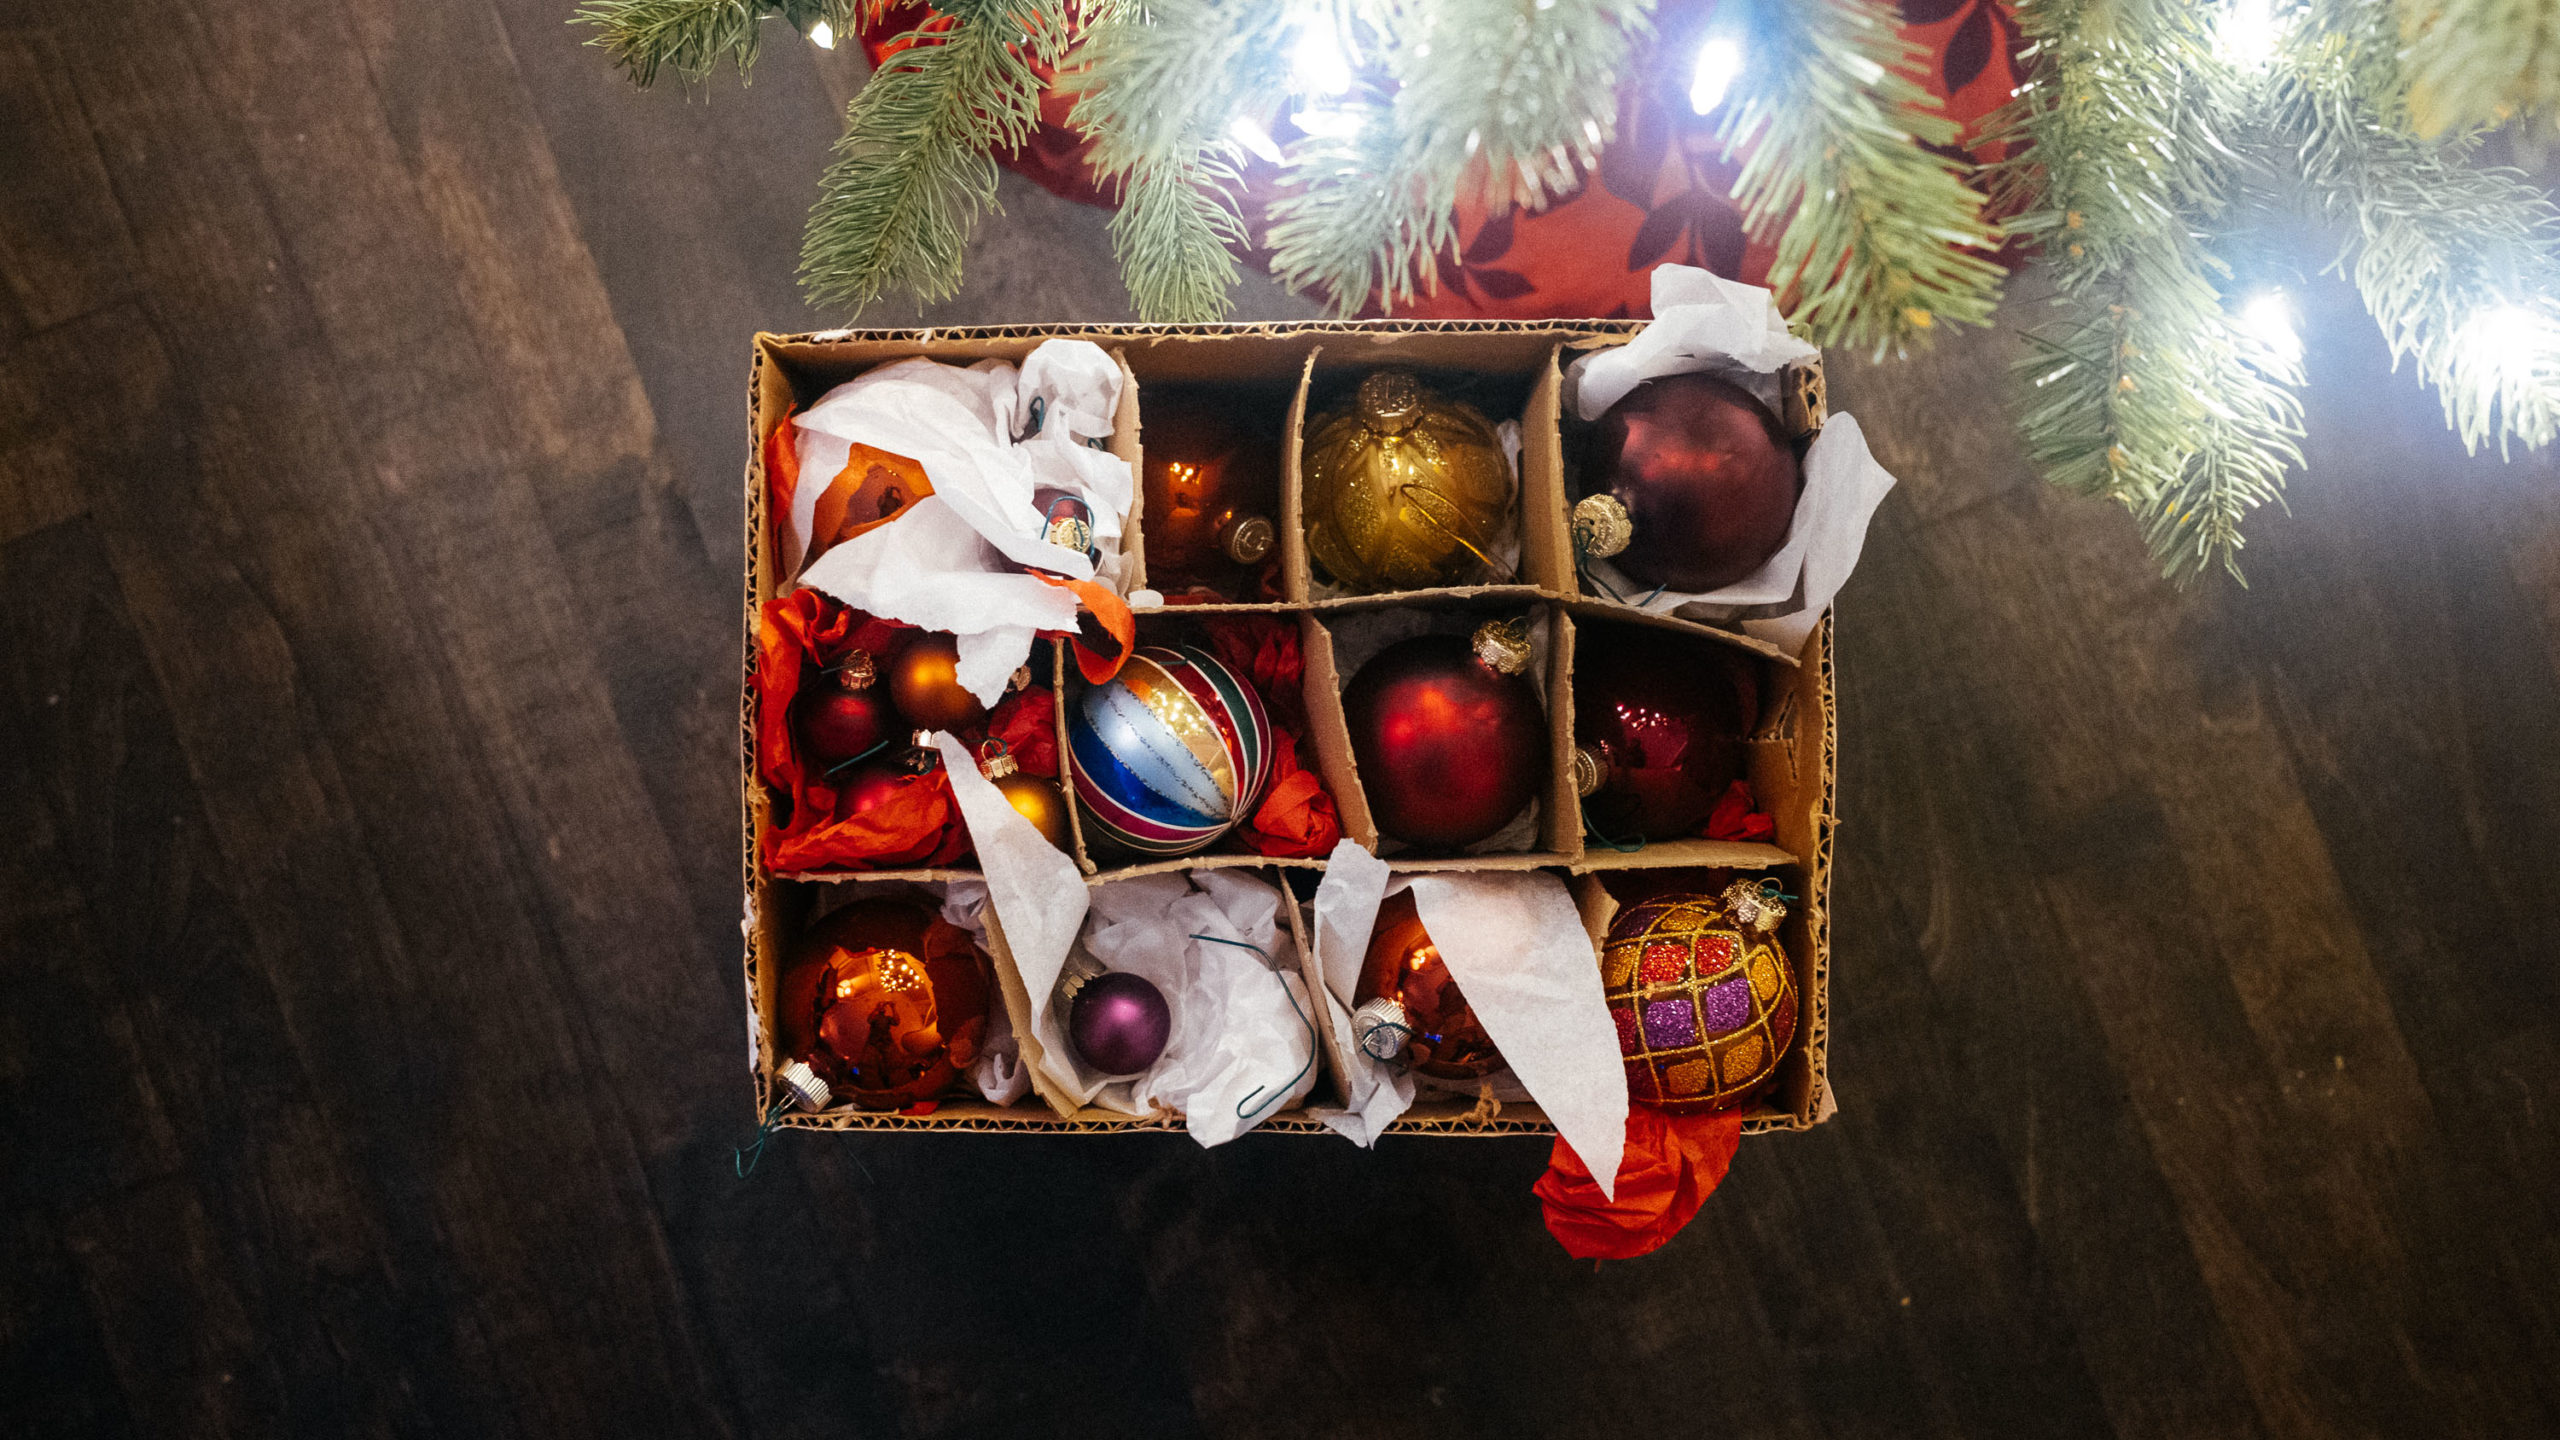 Christmas ornaments in a wine box